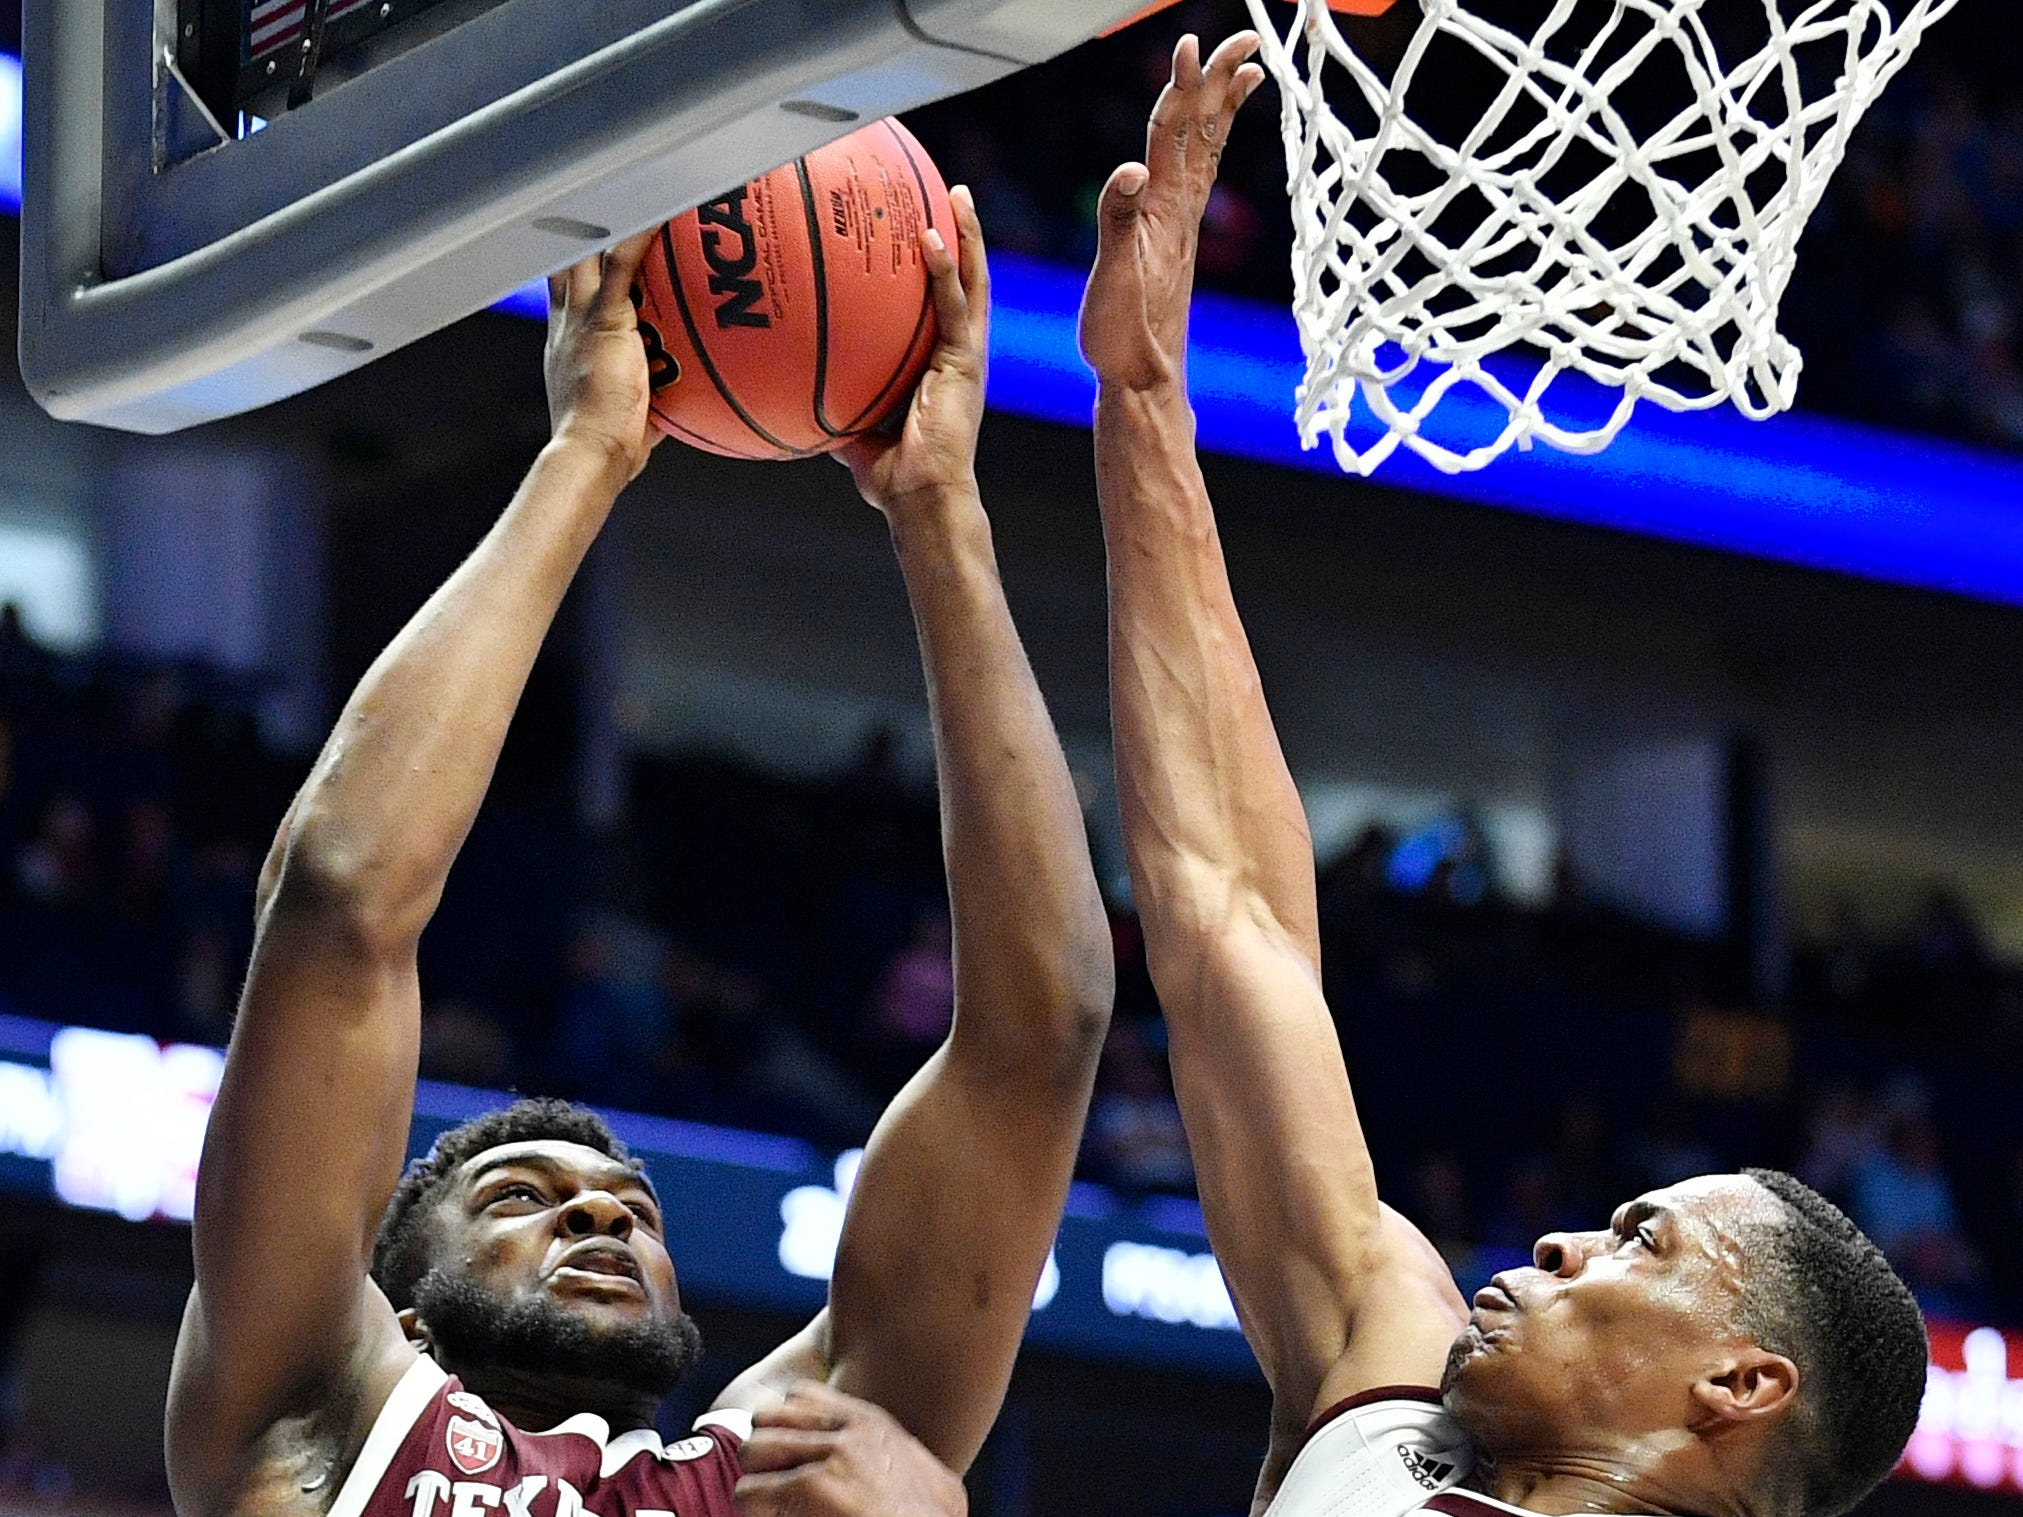 Texas A&M forward Josh Nebo (32) shoots defended by Mississippi State guard Lamar Peters (2) during the first half of the SEC Men's Basketball Tournament game at Bridgestone Arena in Nashville, Tenn., Thursday, March 14, 2019.